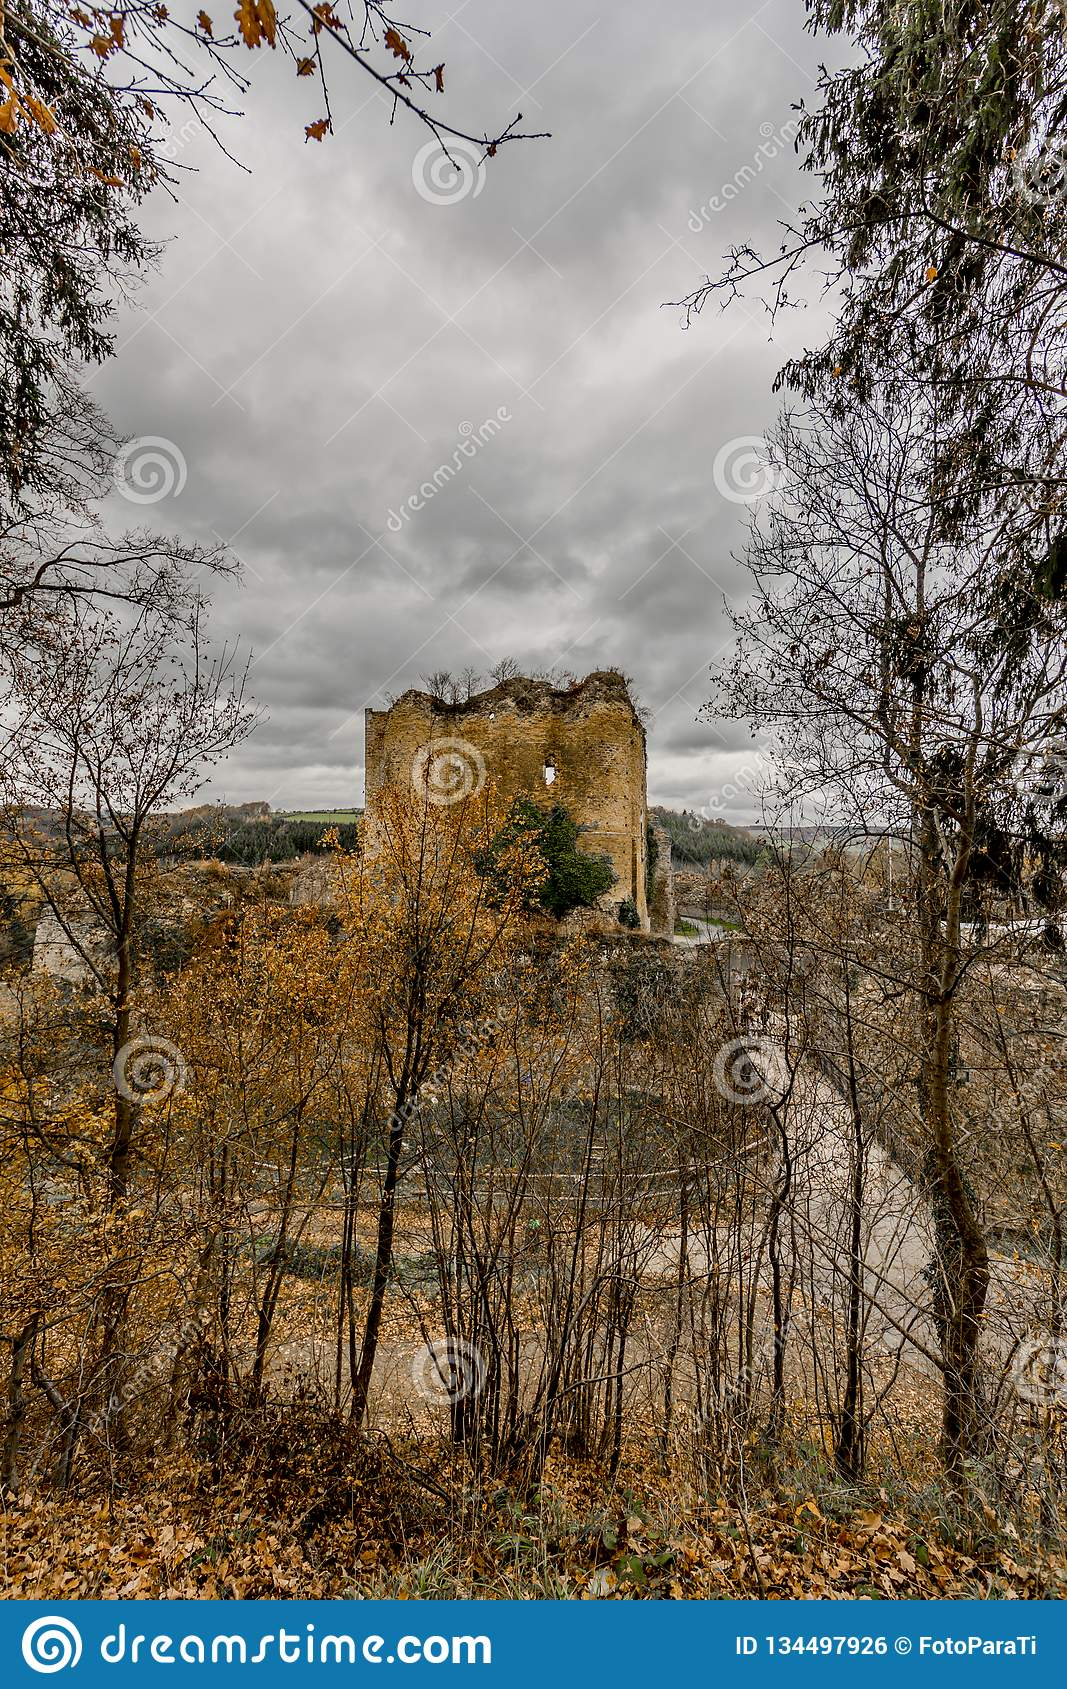 Amazing image of the castle Franchimont in ruins view from the forest